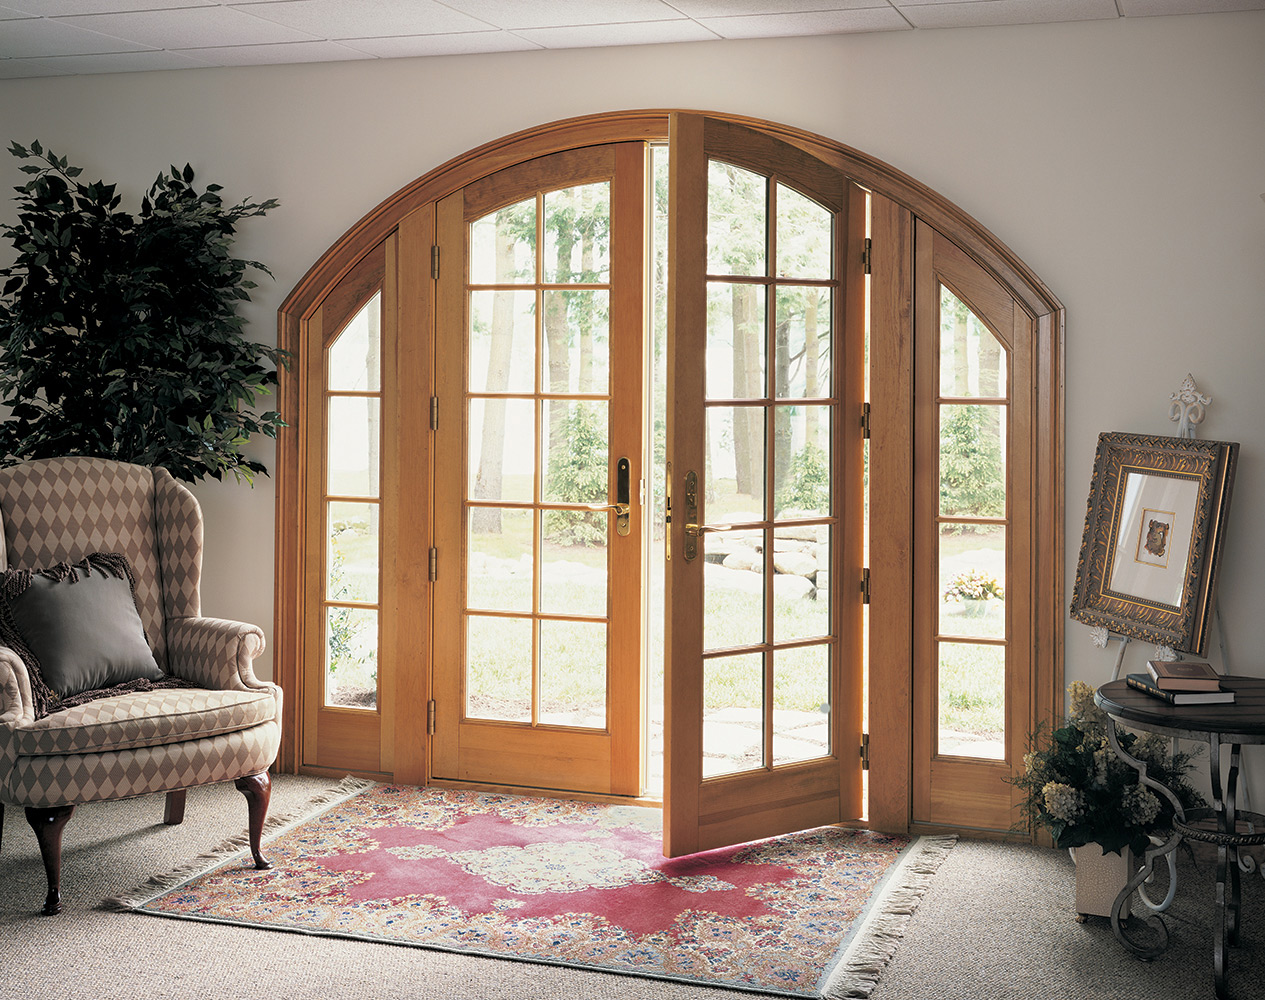 Replacement patio doors wisconsin hometowne windows for Porch windows and doors